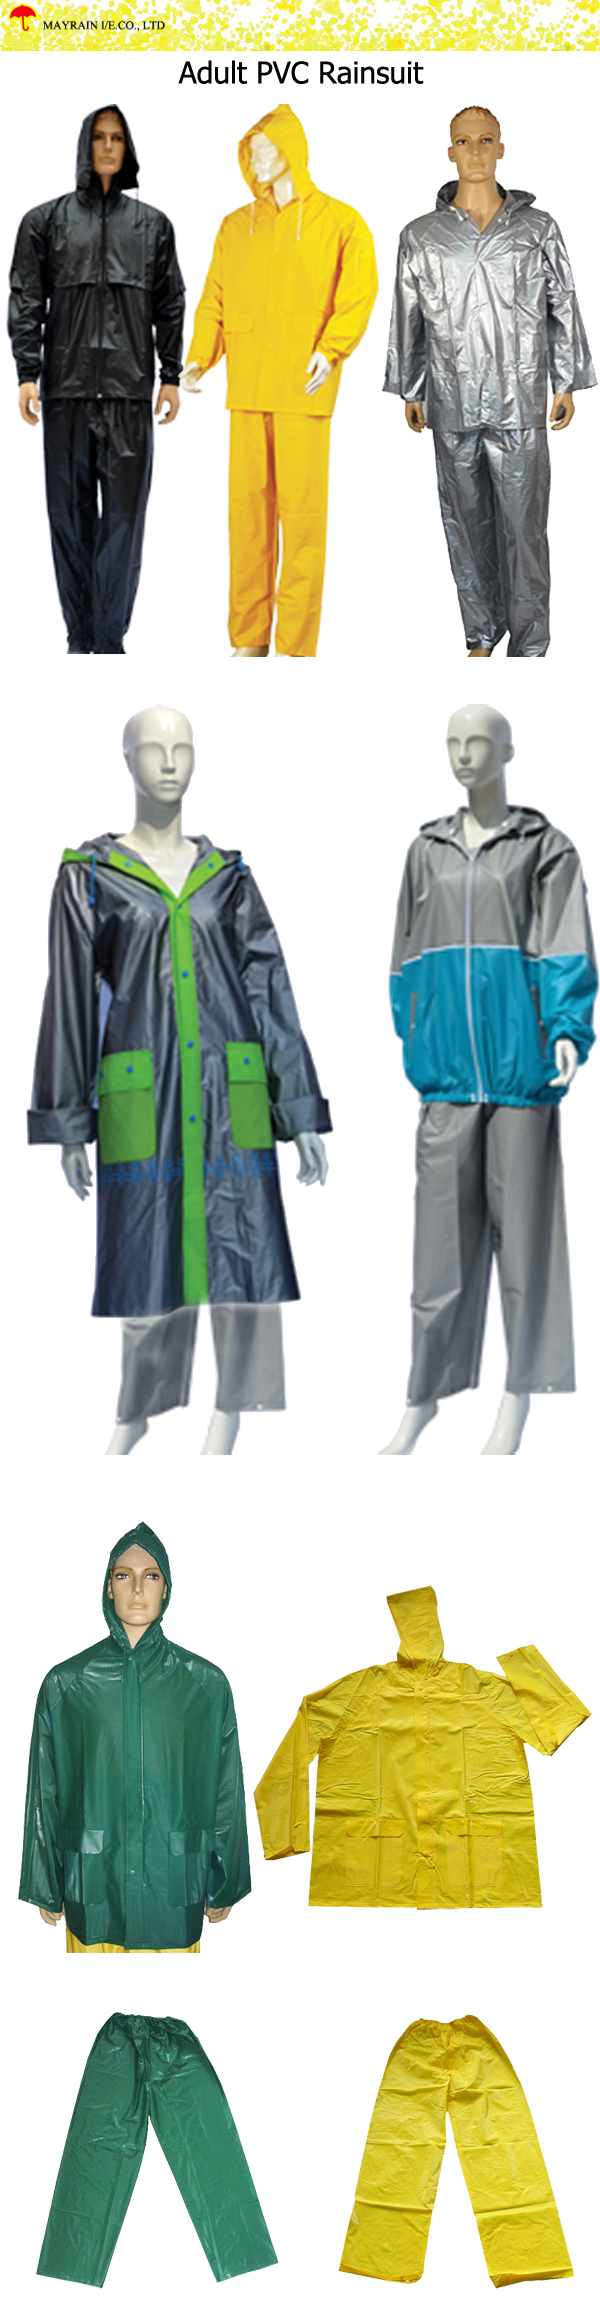 Adult PVC Rainsuit